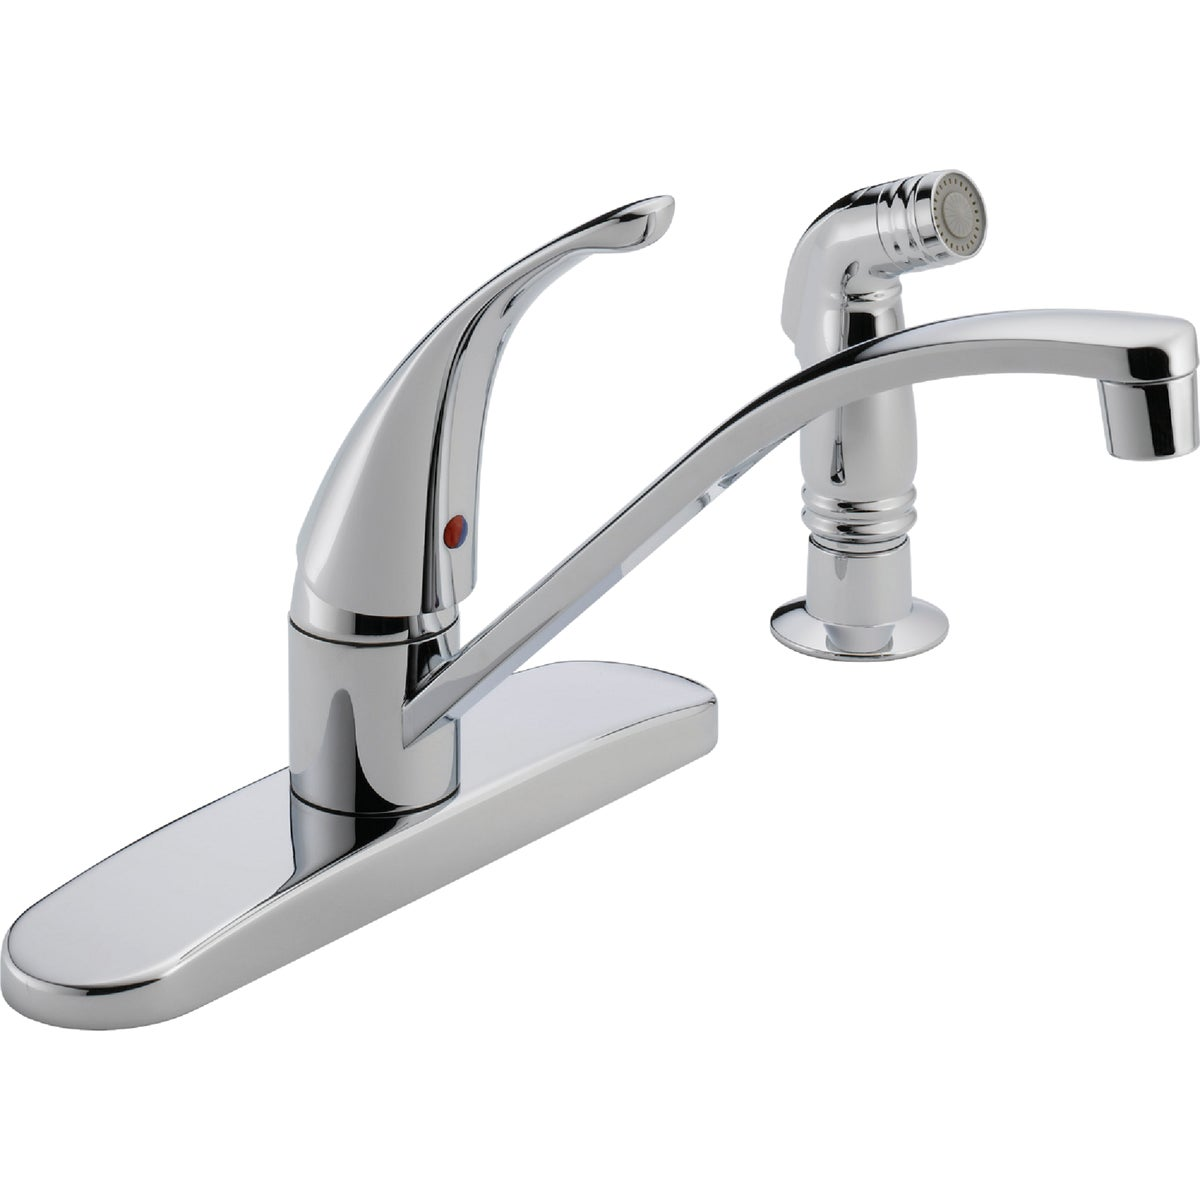 Peerless Choice P188500LF Single Handle Kitchen Faucet with Side Spray